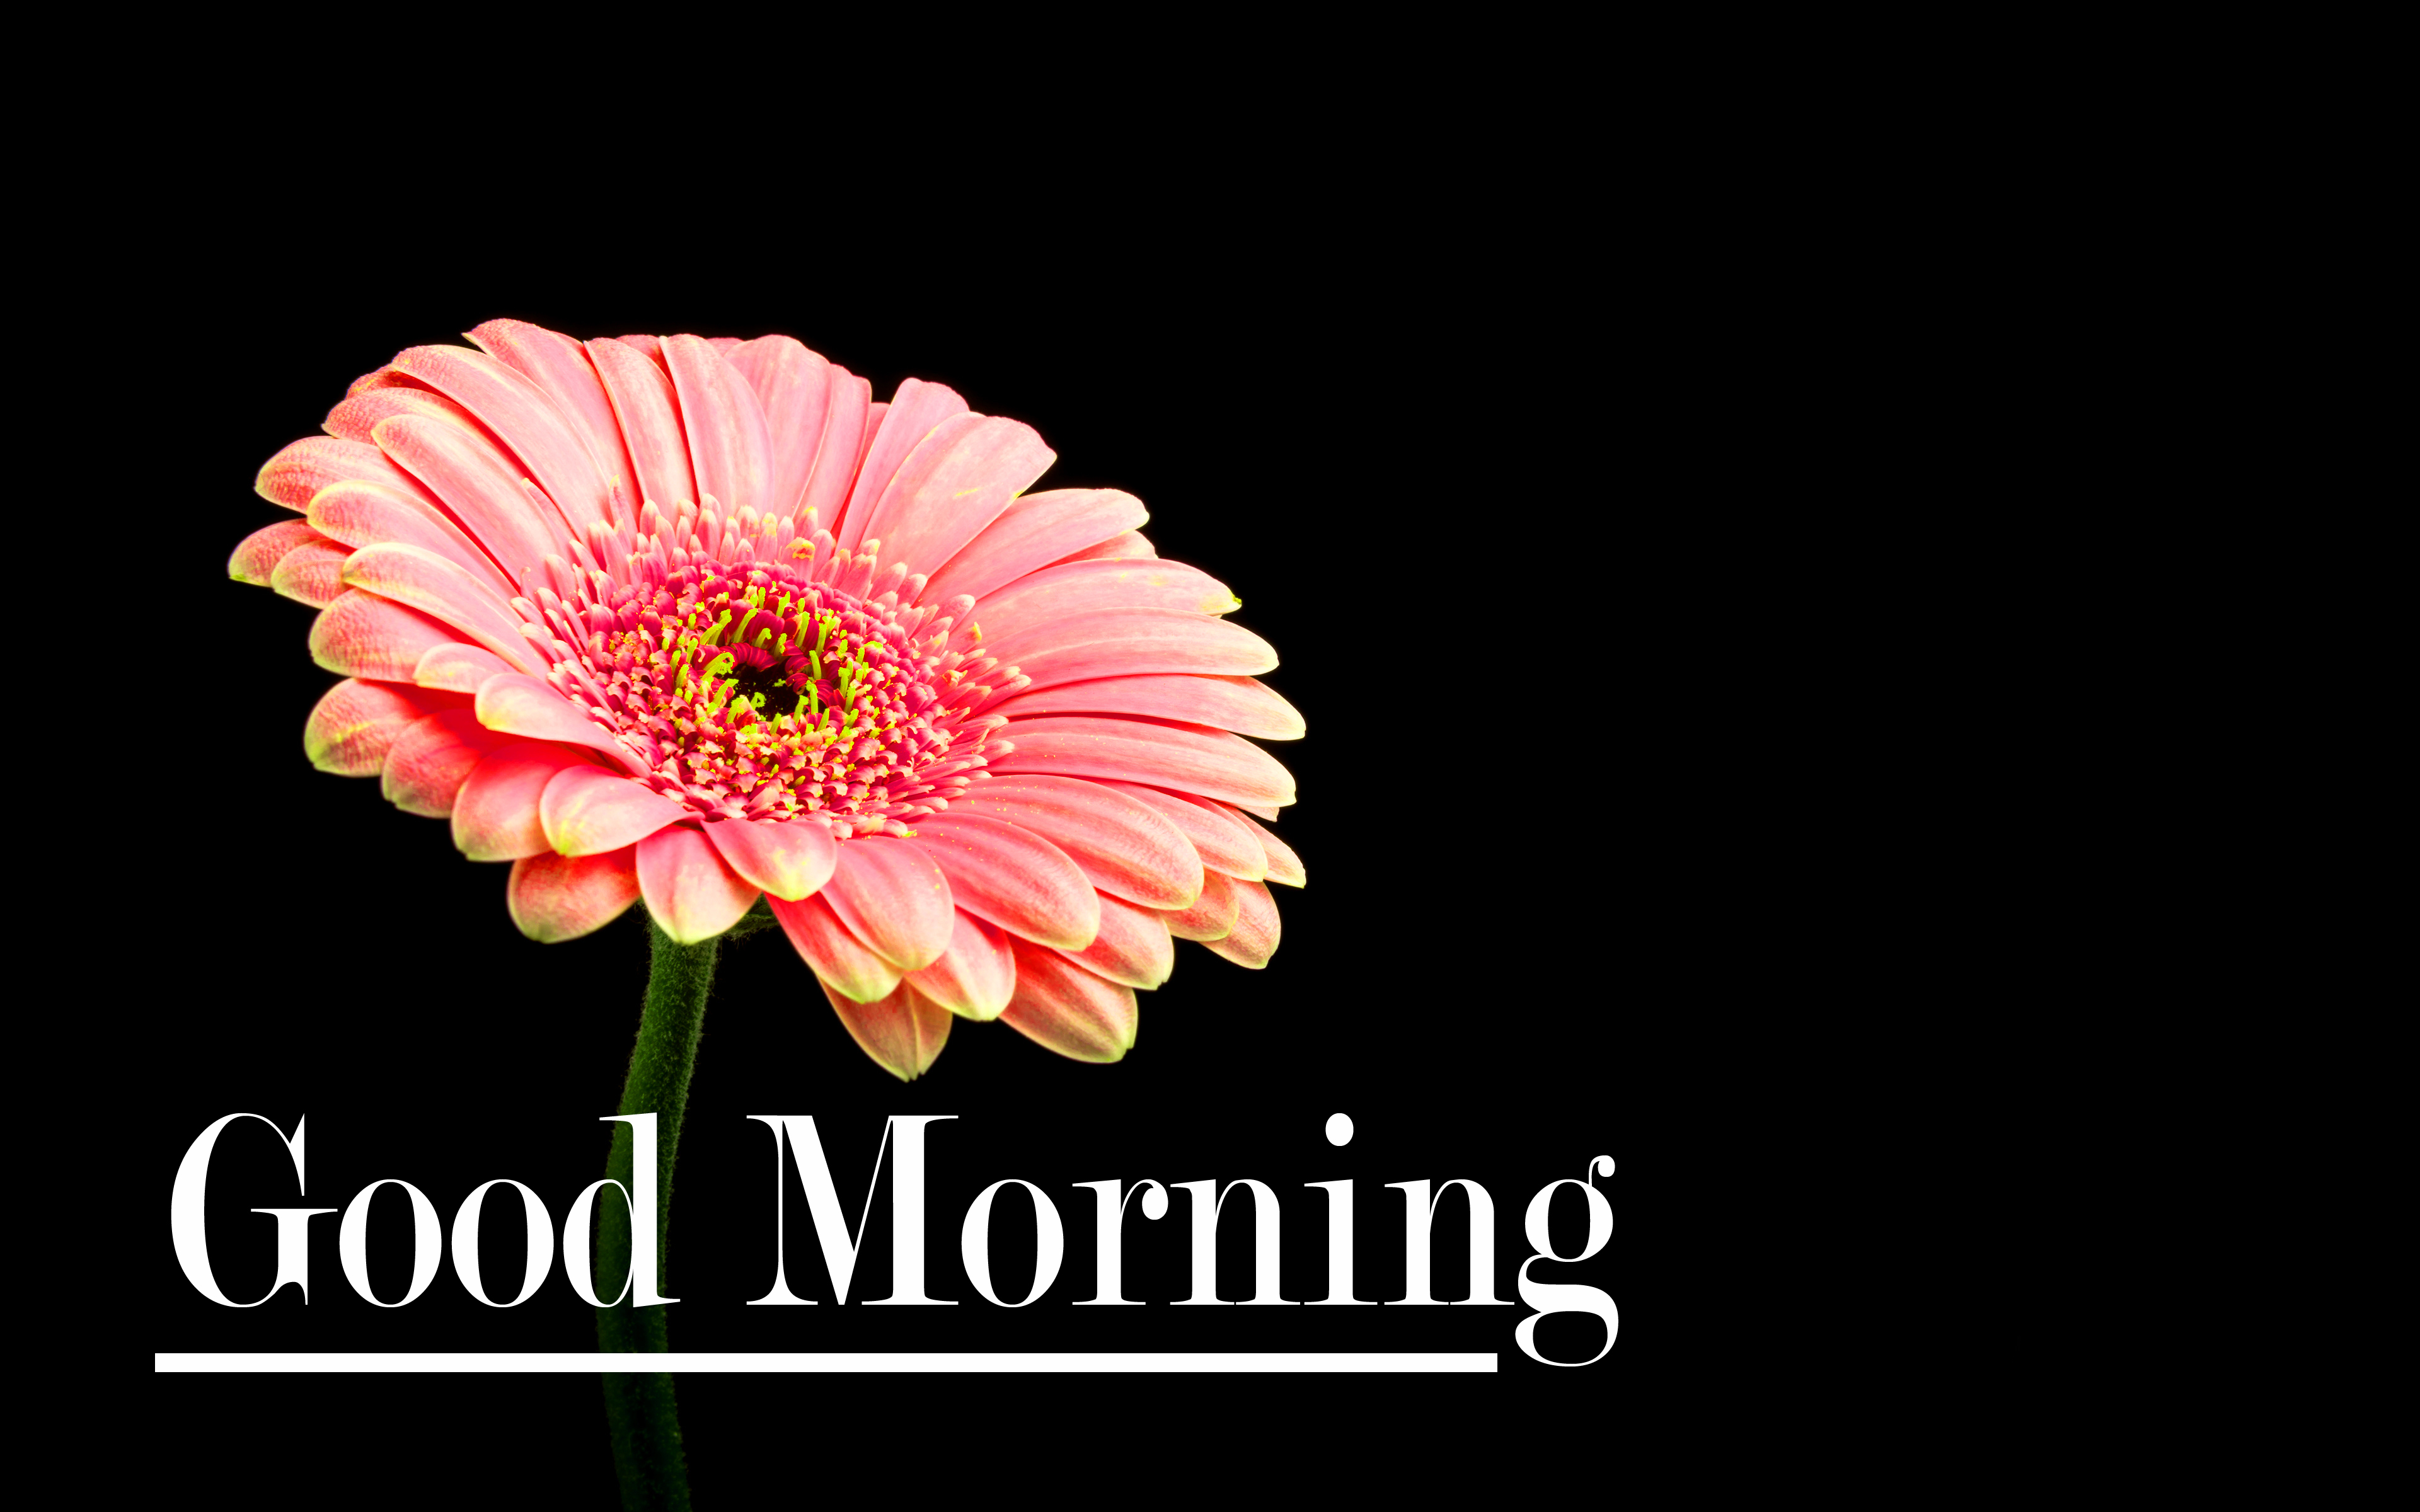 Flower Good Morning Pics Download In HD